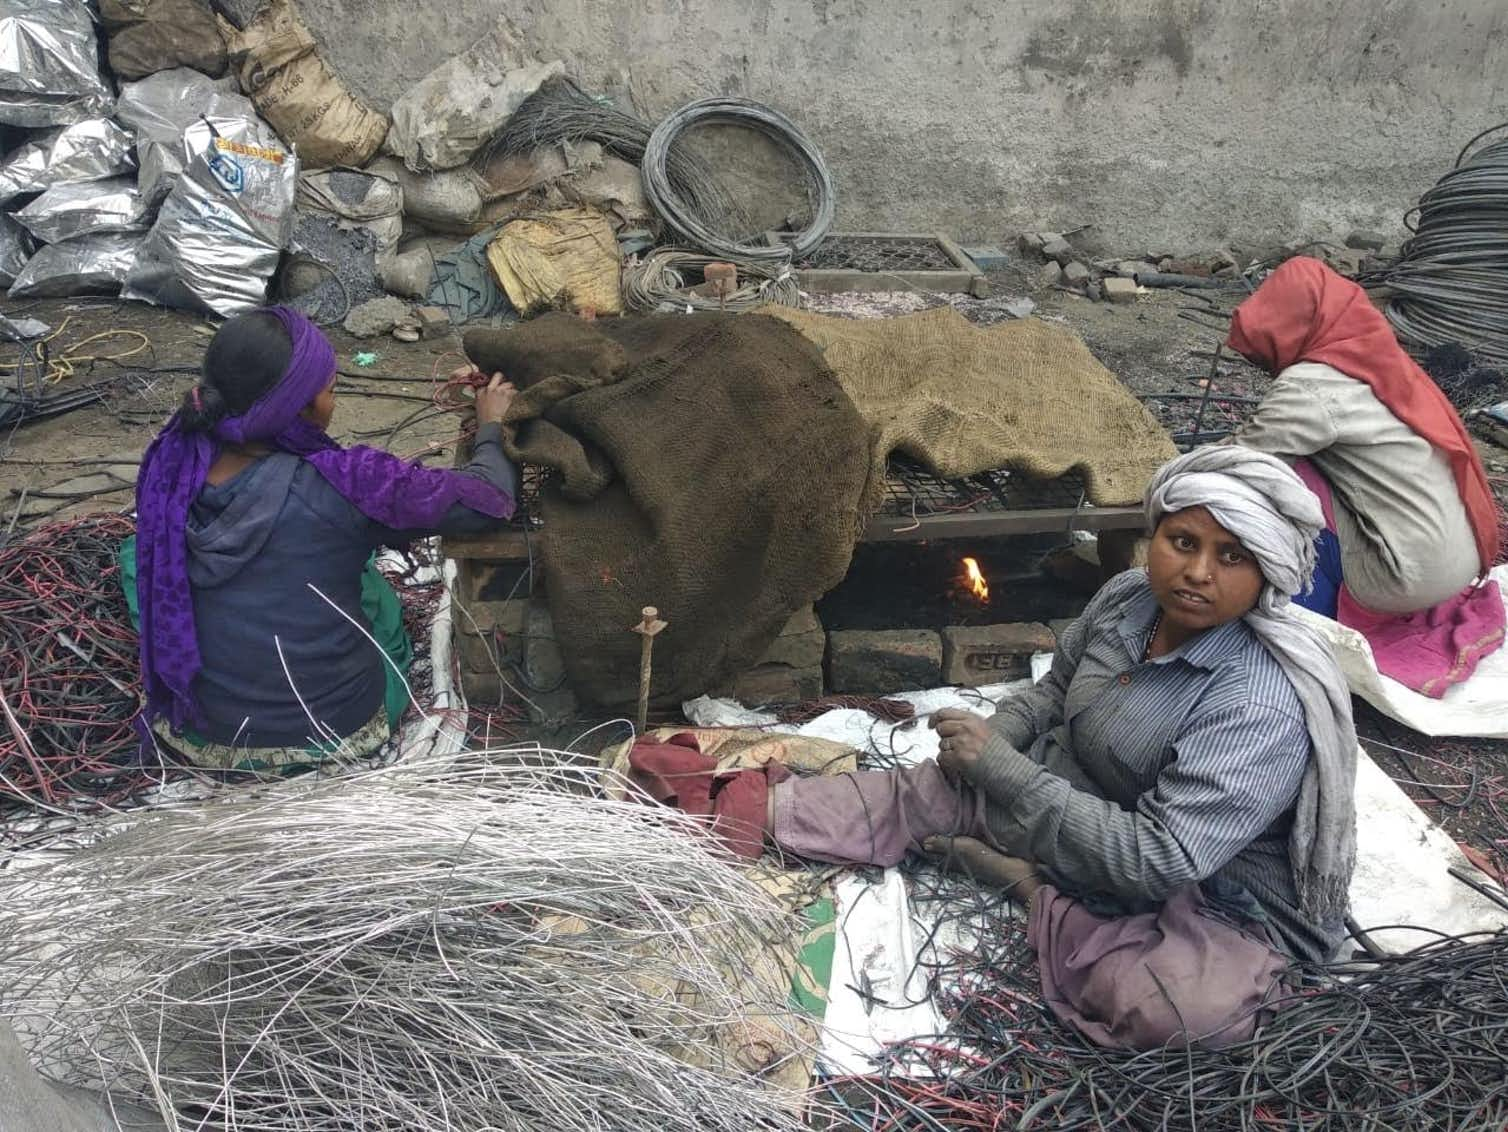 Women extracting copper from electrical wires, in a highly polluting process. Photo credit: Alankrita Soni, Author provided